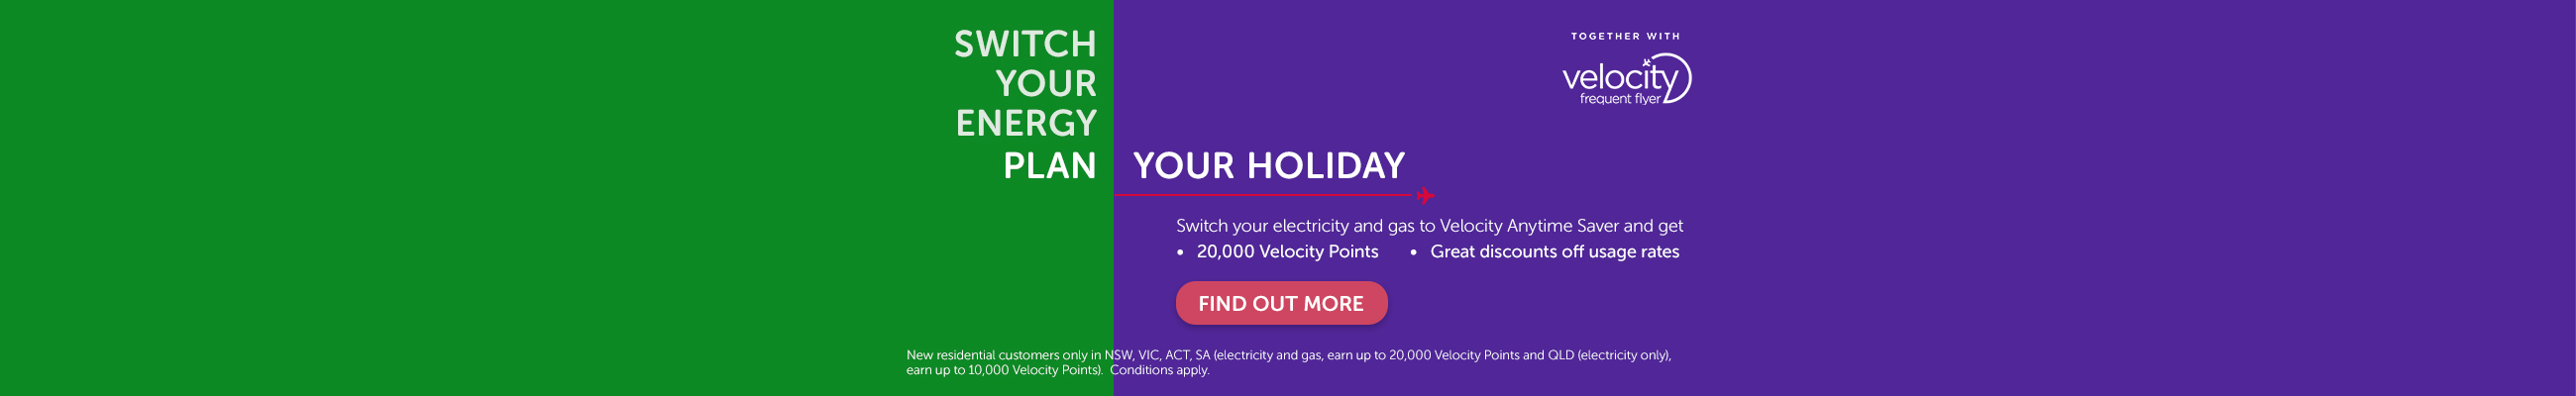 Switch your electricity and gas to Velocity Anytime Saver and get 20000 Velocity Points and Great discounts off usage rates. Find out more.